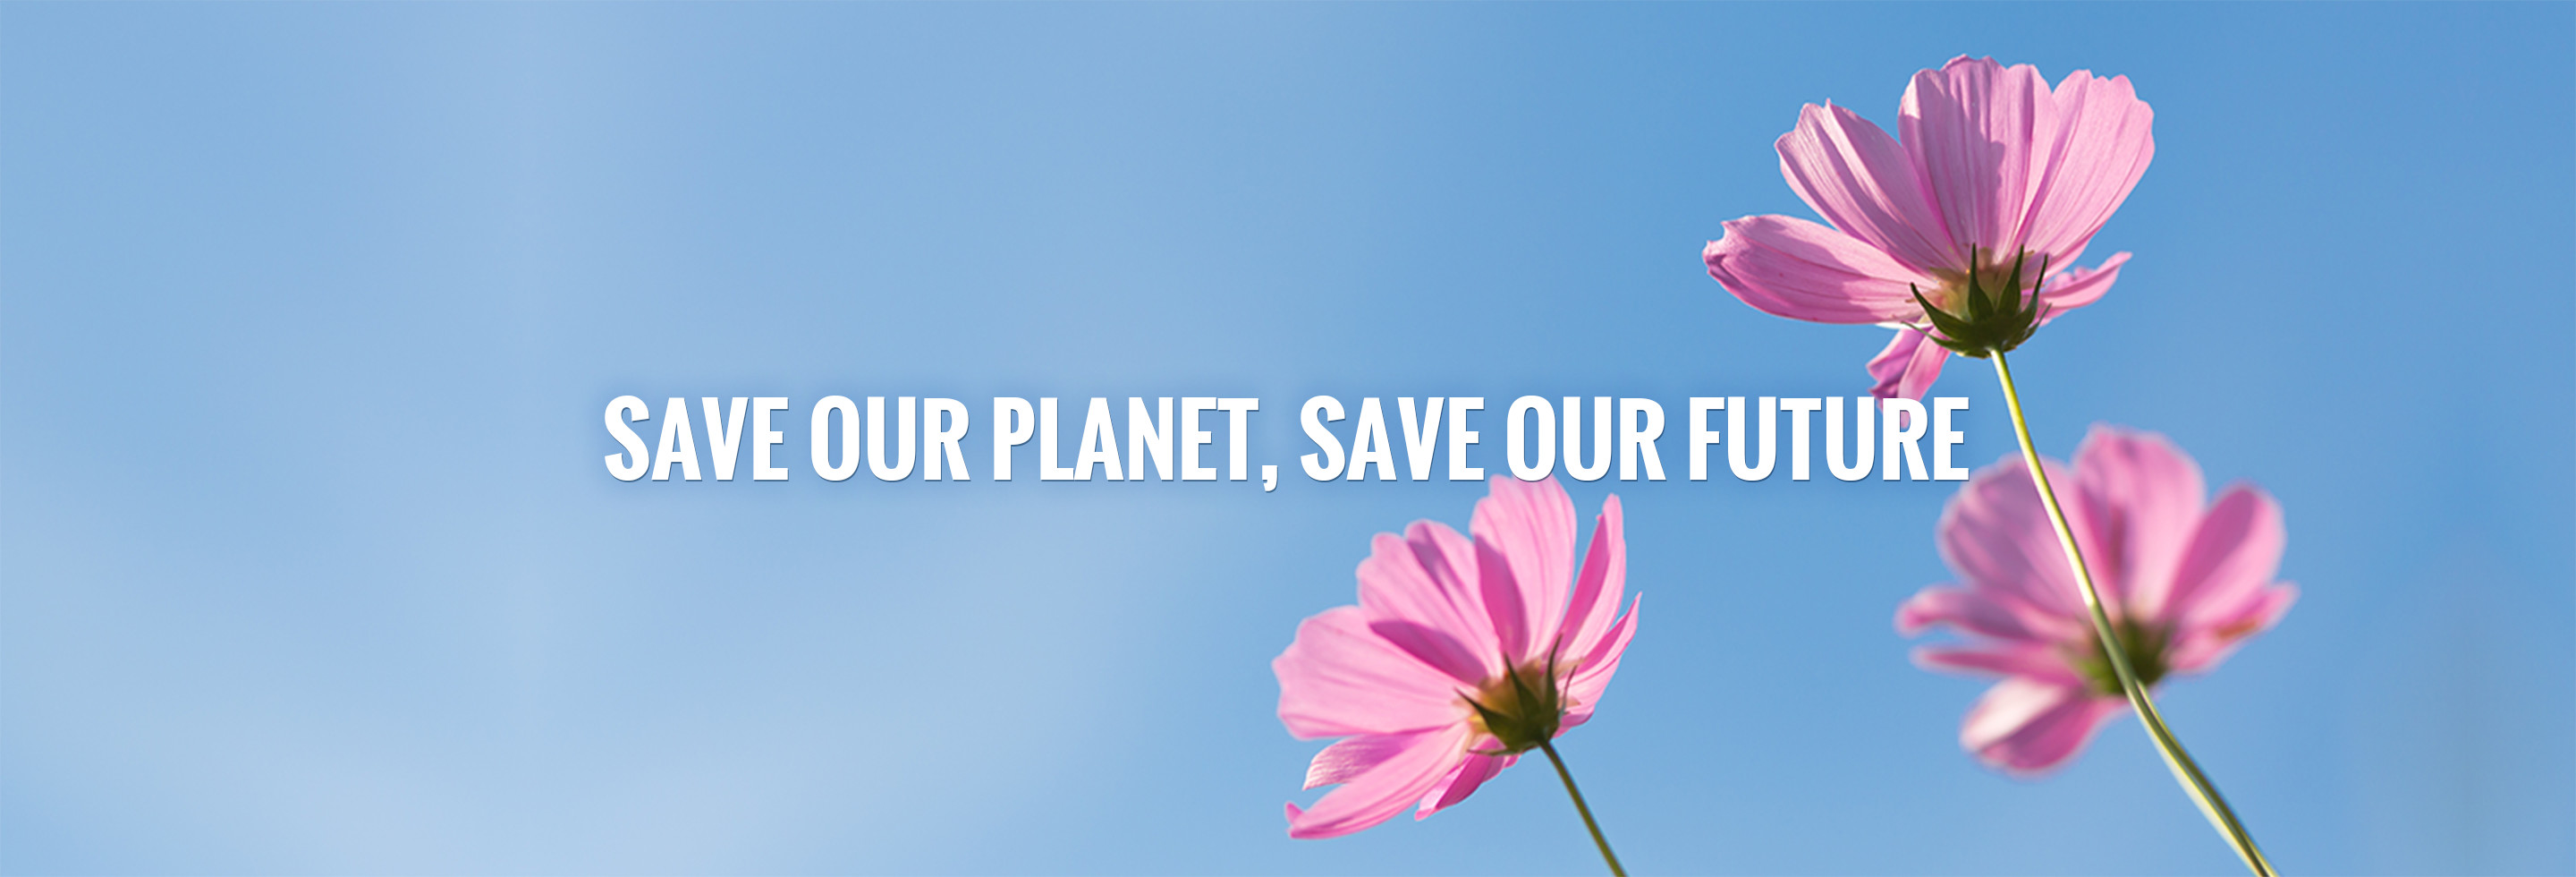 SAVE OUR PLANET, SAVE OUR FUTURE